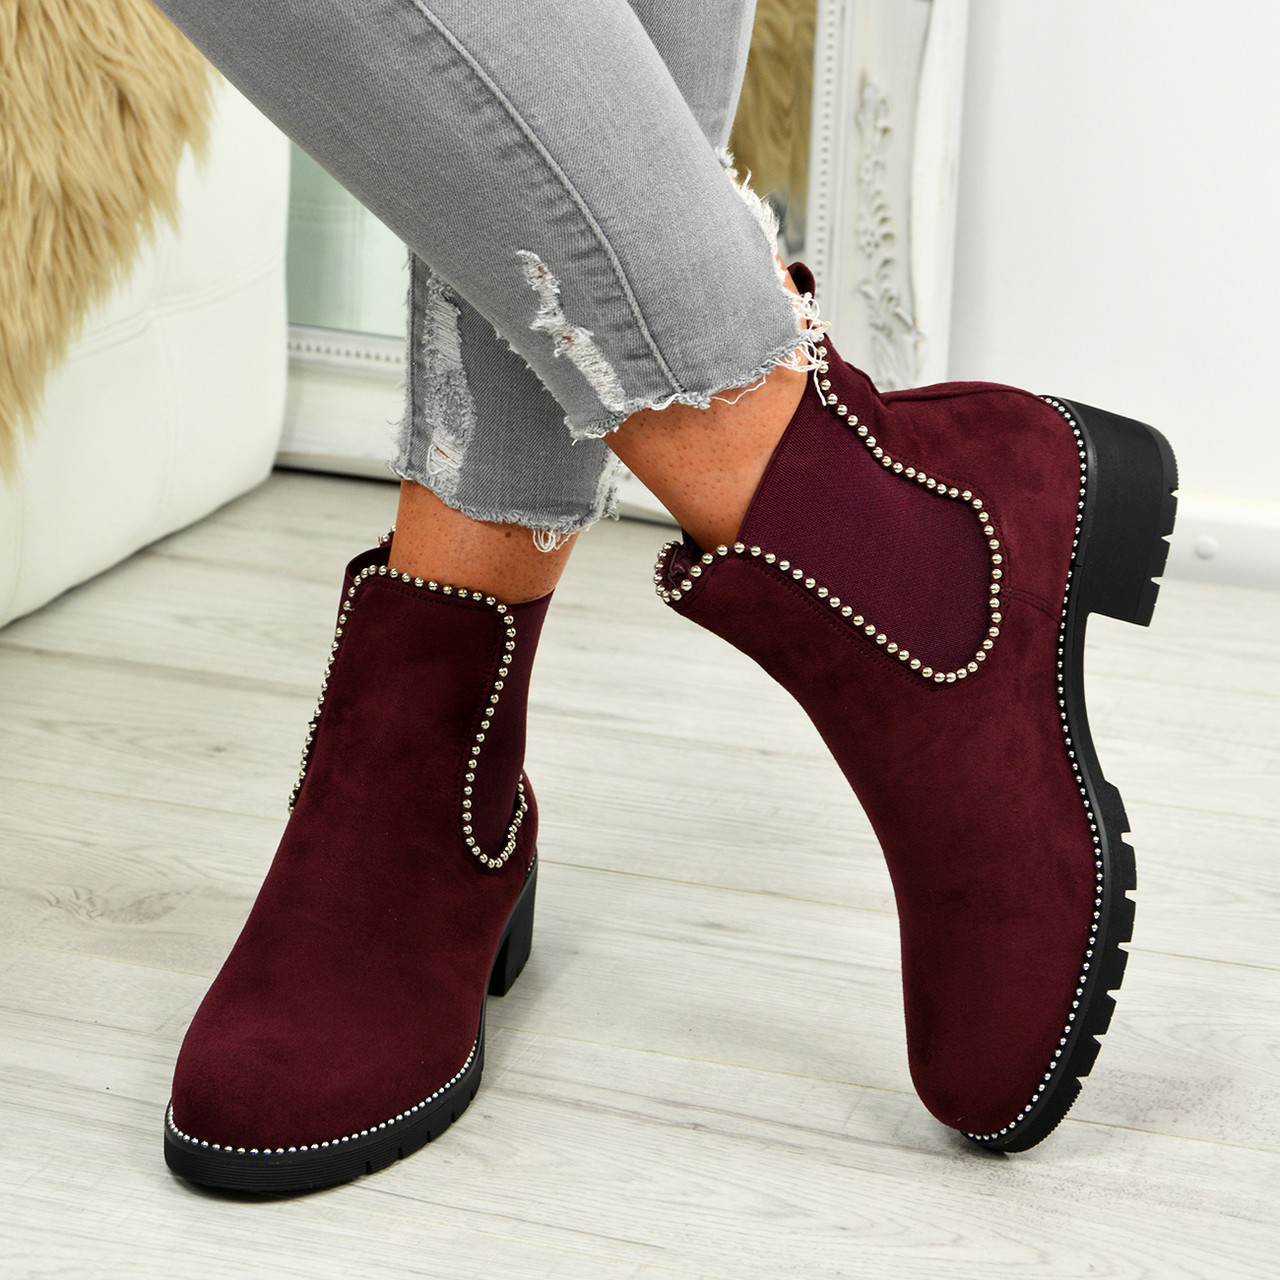 85ad17160a9b3 Ladies Womens Elastic Gusets Ankle Boots Chelsea Studded Low Heel Shoes Size